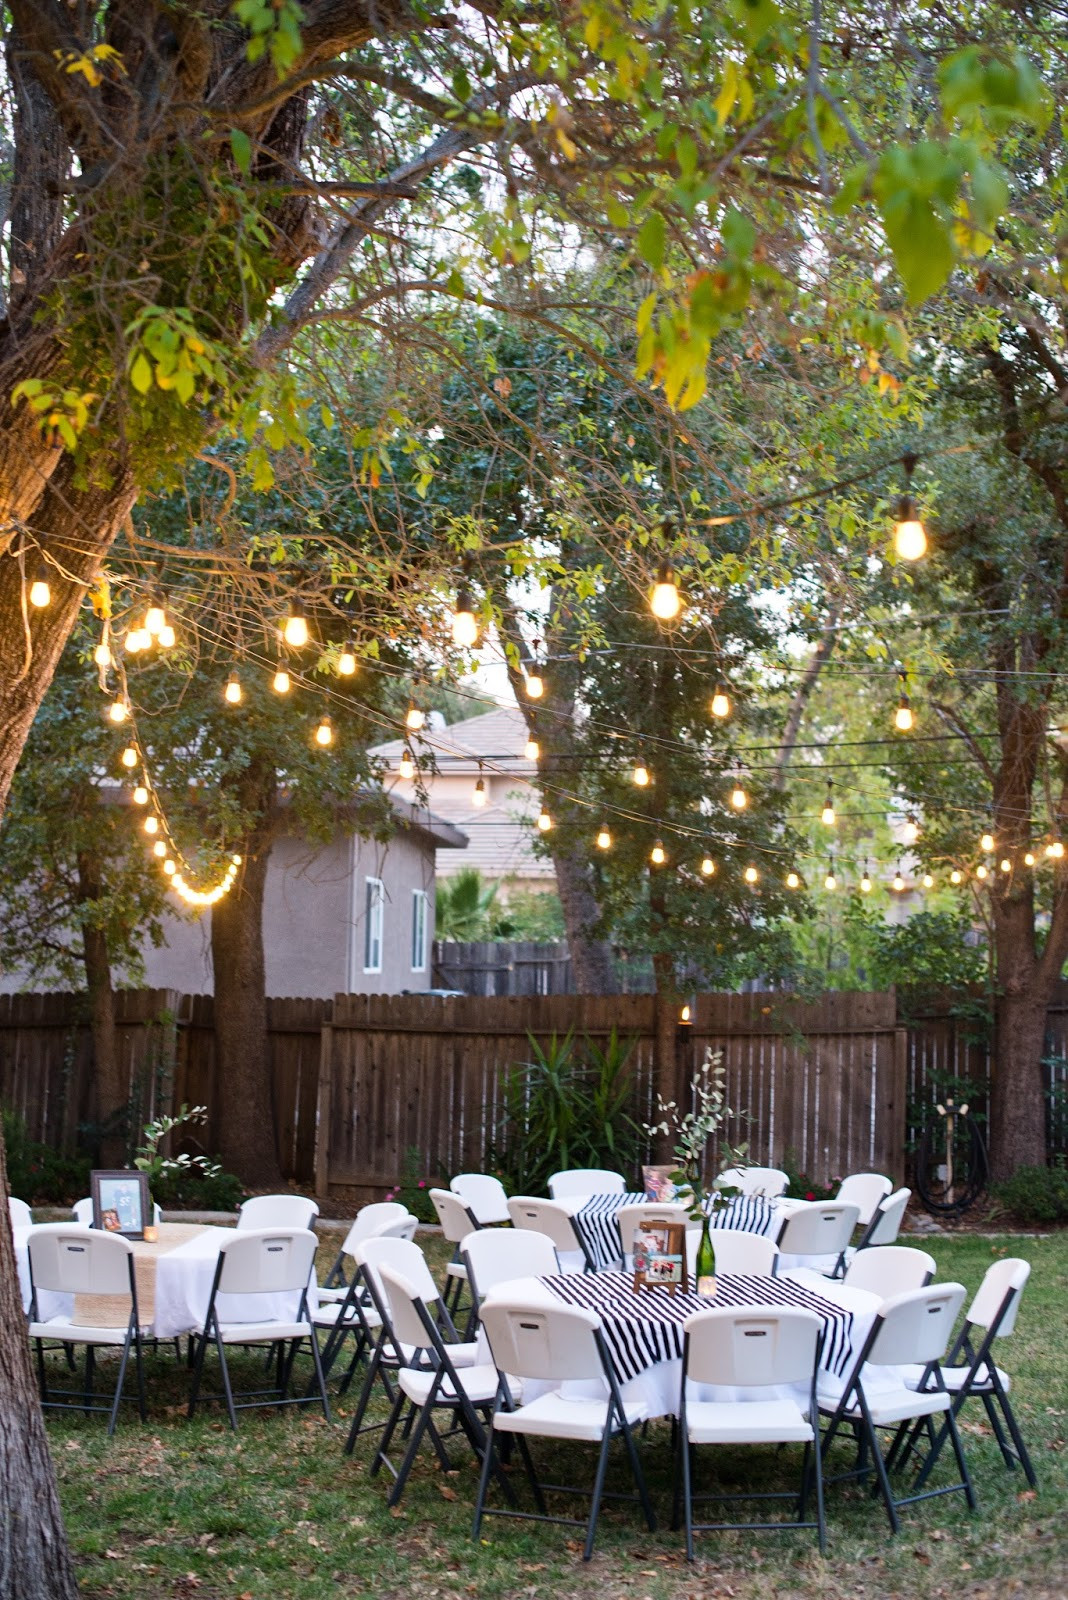 Backyard Party Decor Ideas  Domestic Fashionista Backyard Birthday Party For the Guy